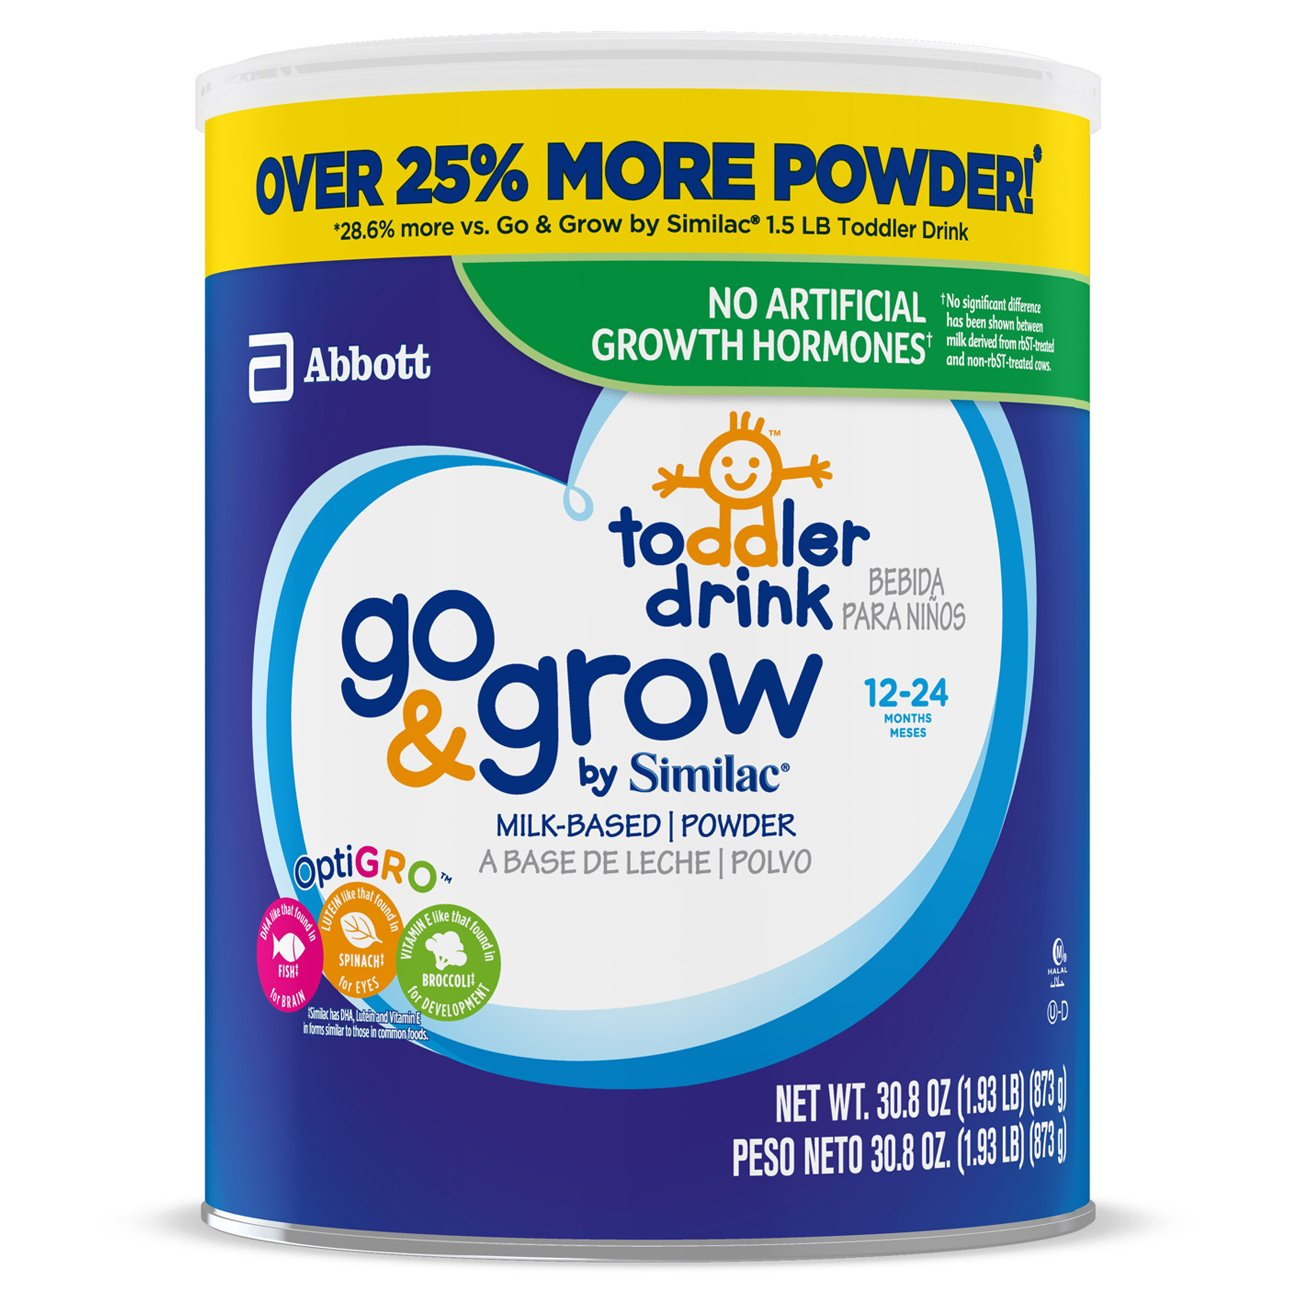 Go & Grow by Similac Milk Based Toddler Drink, (Pack Of 3) 36oz cans + 2 On-The-Go Stickpacks ABBN7 - pallet ordering 070074668383